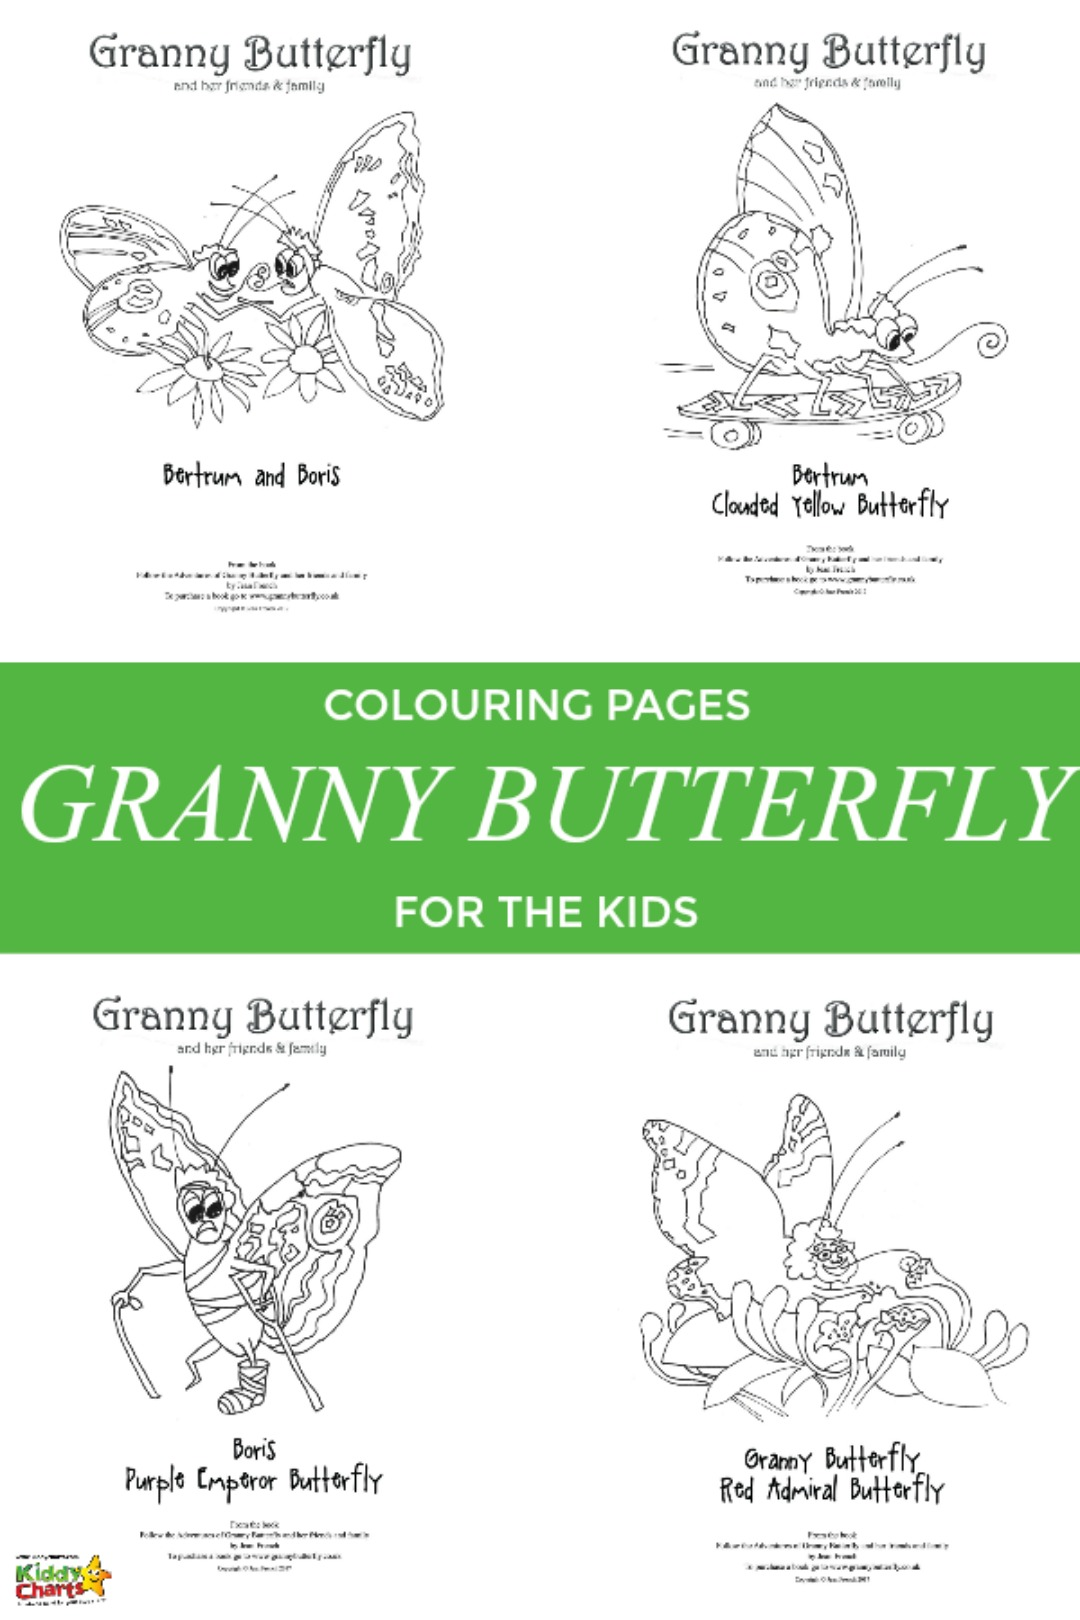 Granny Butterfly colouring pages to use while you read the book with your kids! #reading #butterflies #coloring #colouring